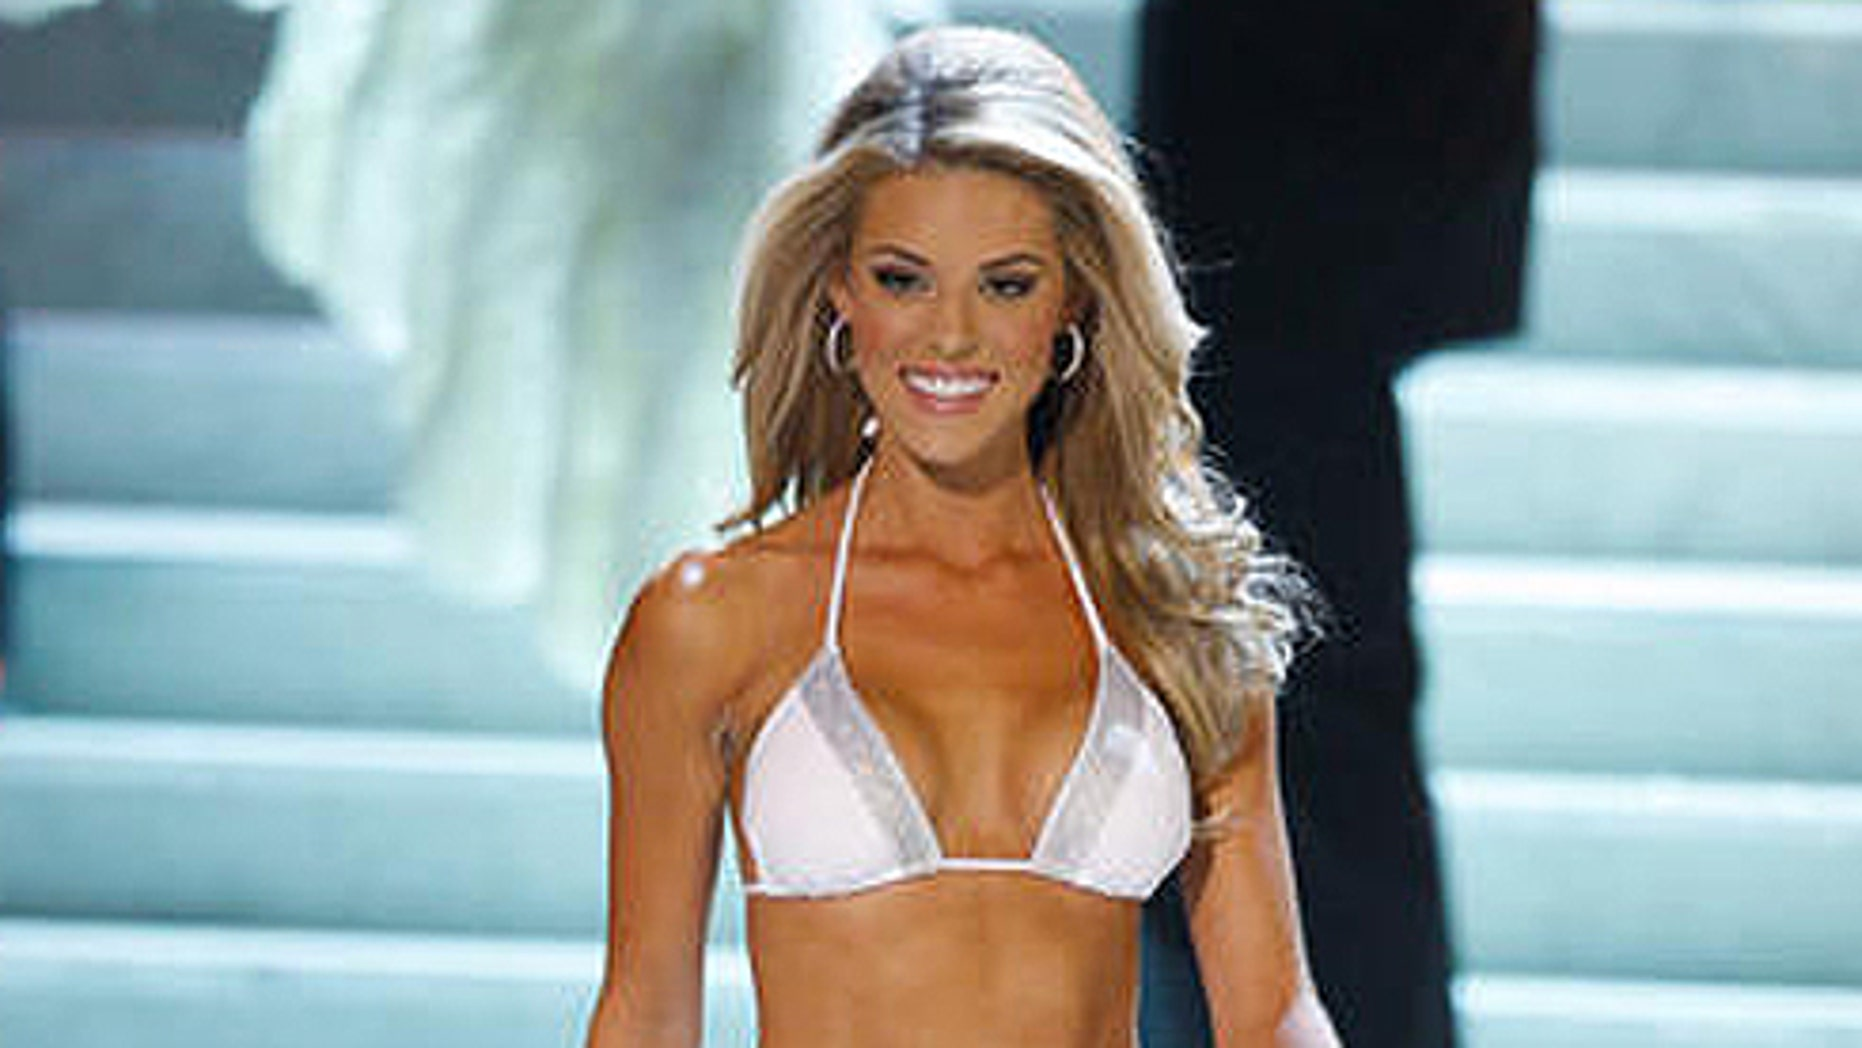 April 26, 2009: Then-Miss California Carrie Prejean participates in swimsuit portion of Miss USA pageant. (AP Photo/Denis Poroy)